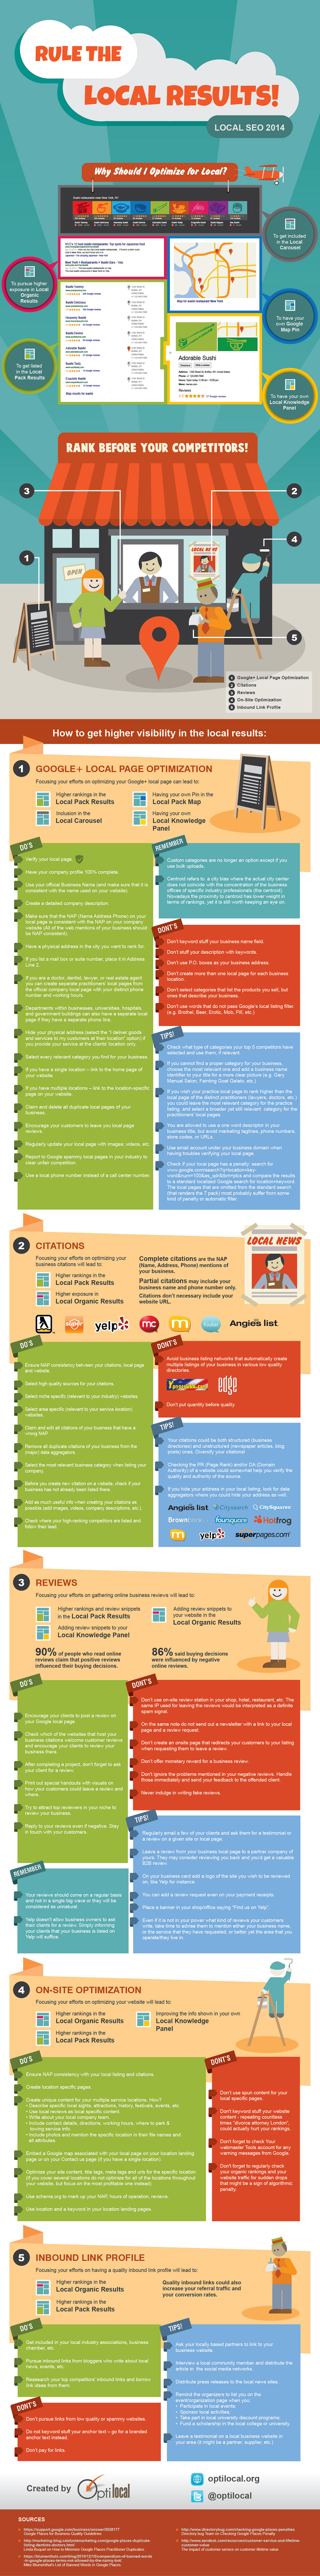 infographie-redaction-seo